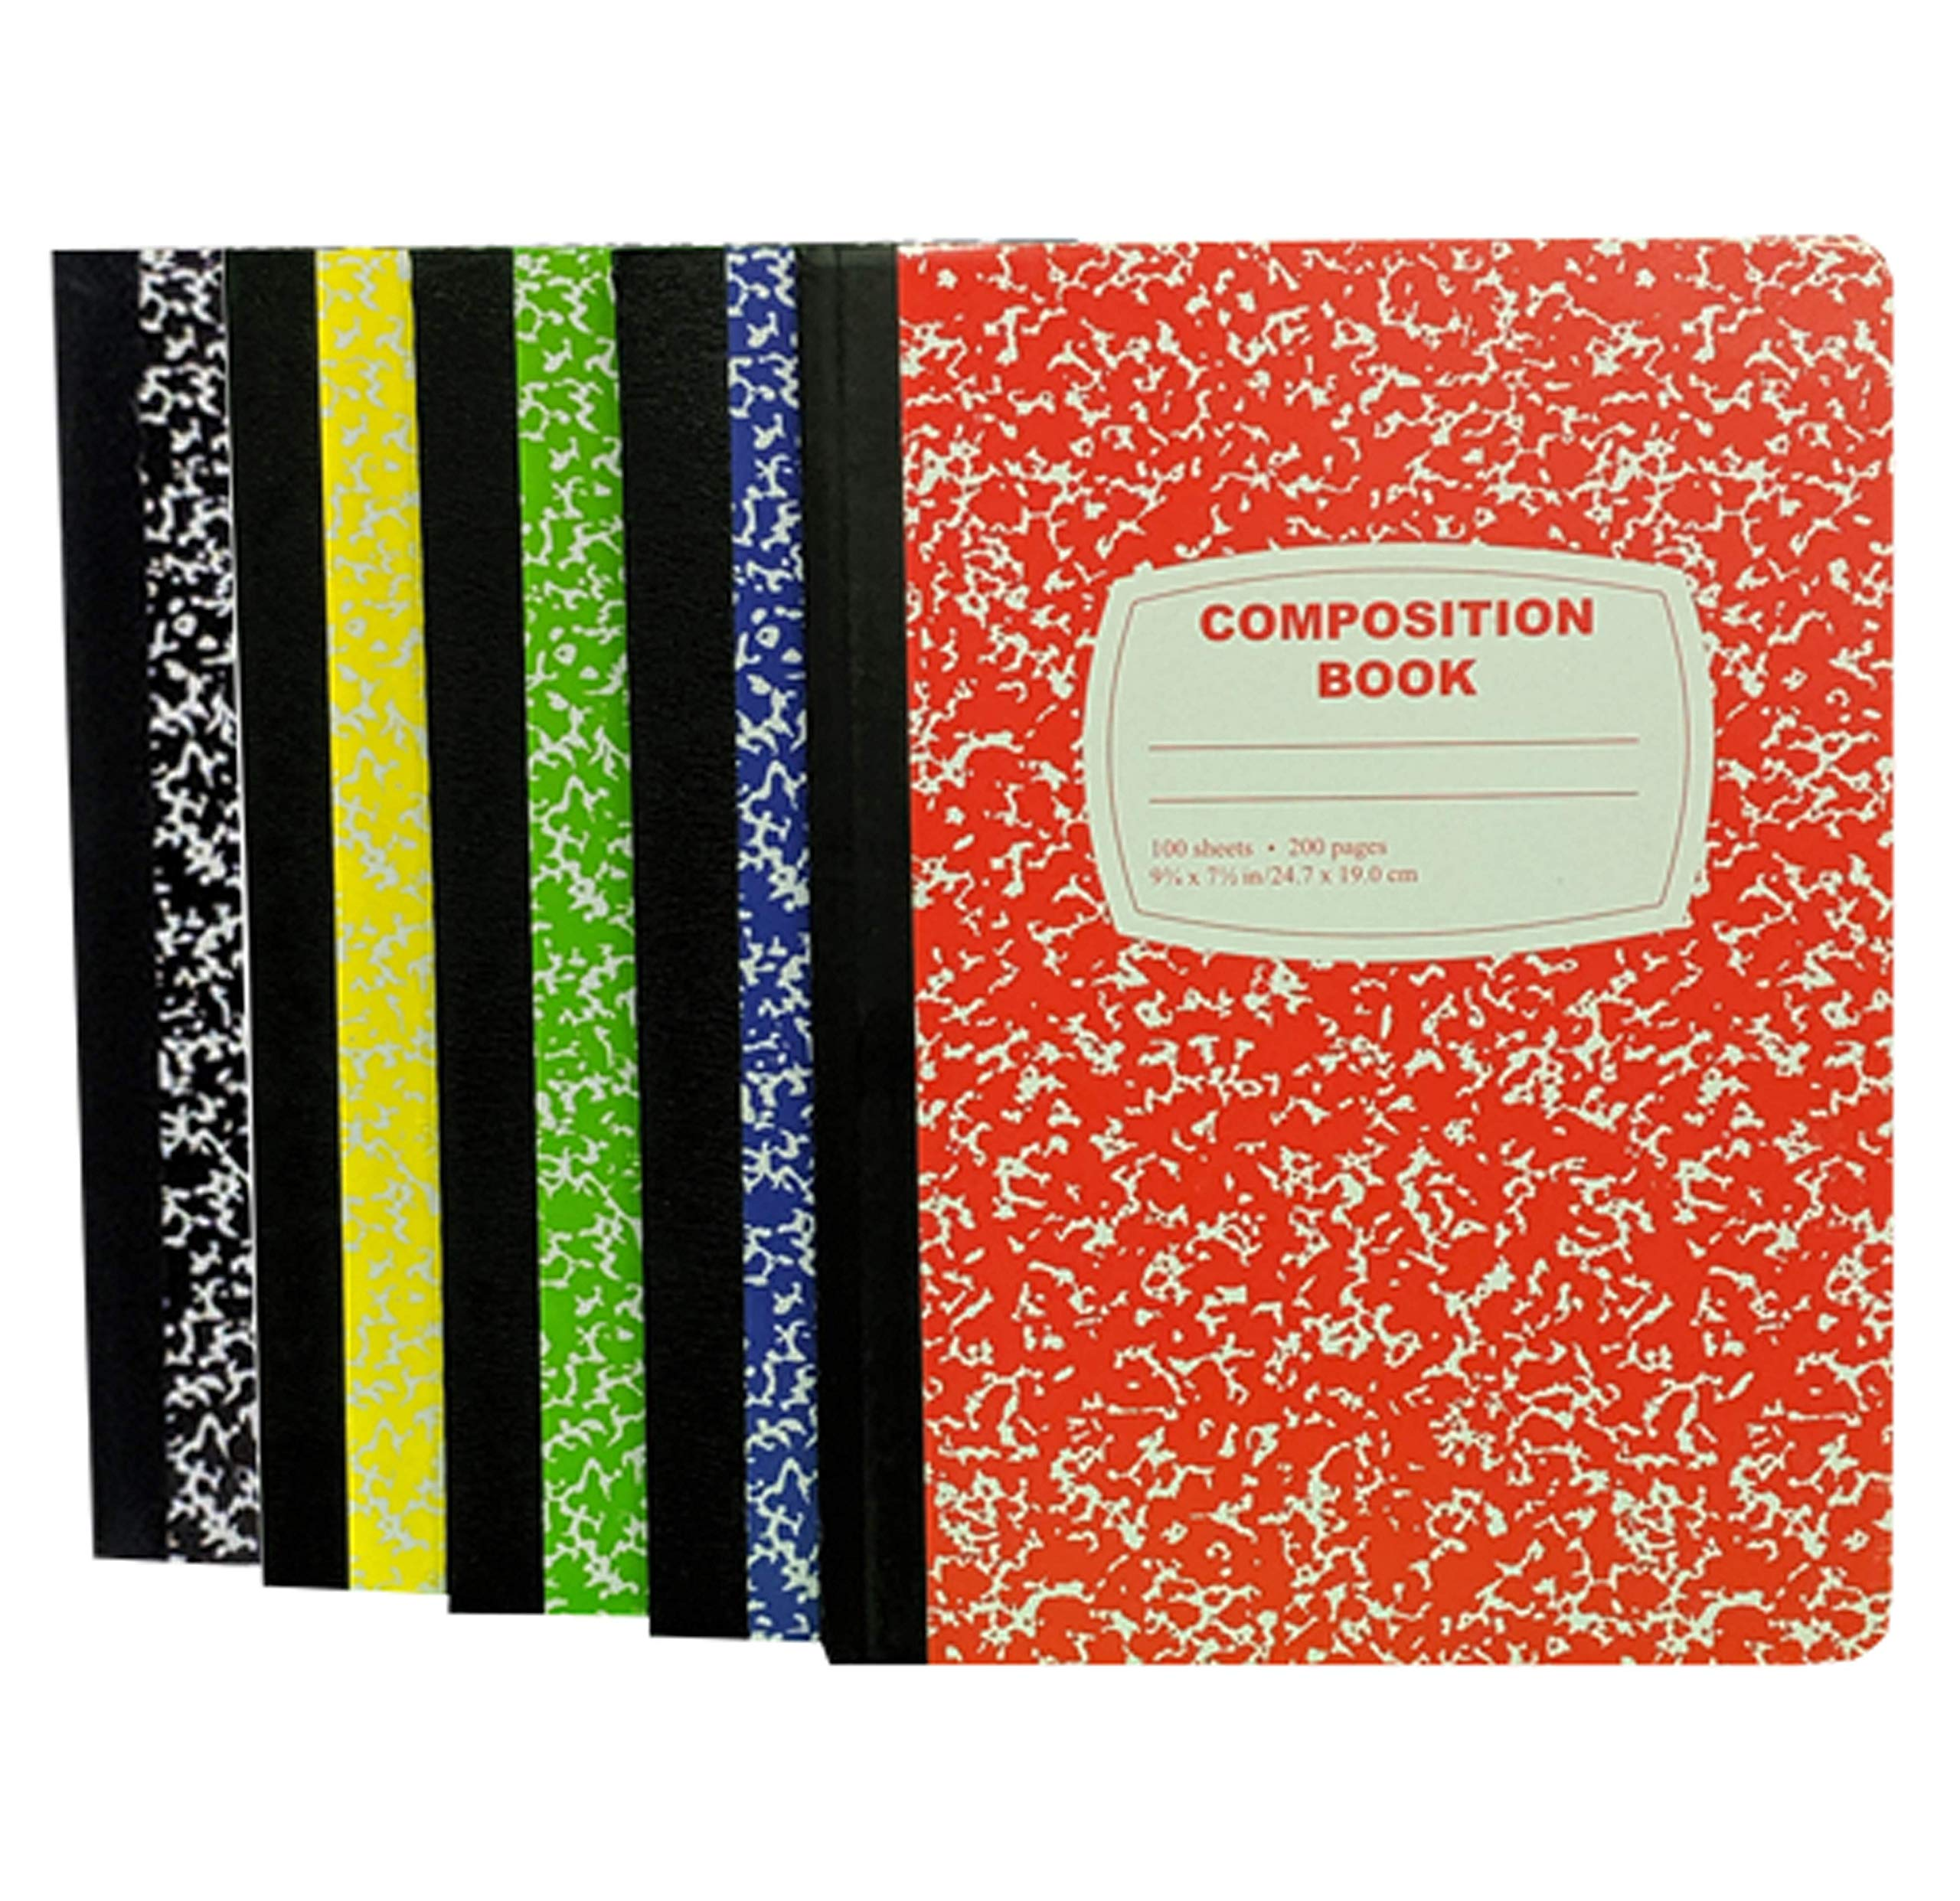 100 Sheet Composition Notebooks - School Supplies Bundle - 5 Composition Notebooks - 1 Black, 1 Red, 1 Green, 1 Blue, and 1 Yellow (College Ruled) by School Supply Boxes